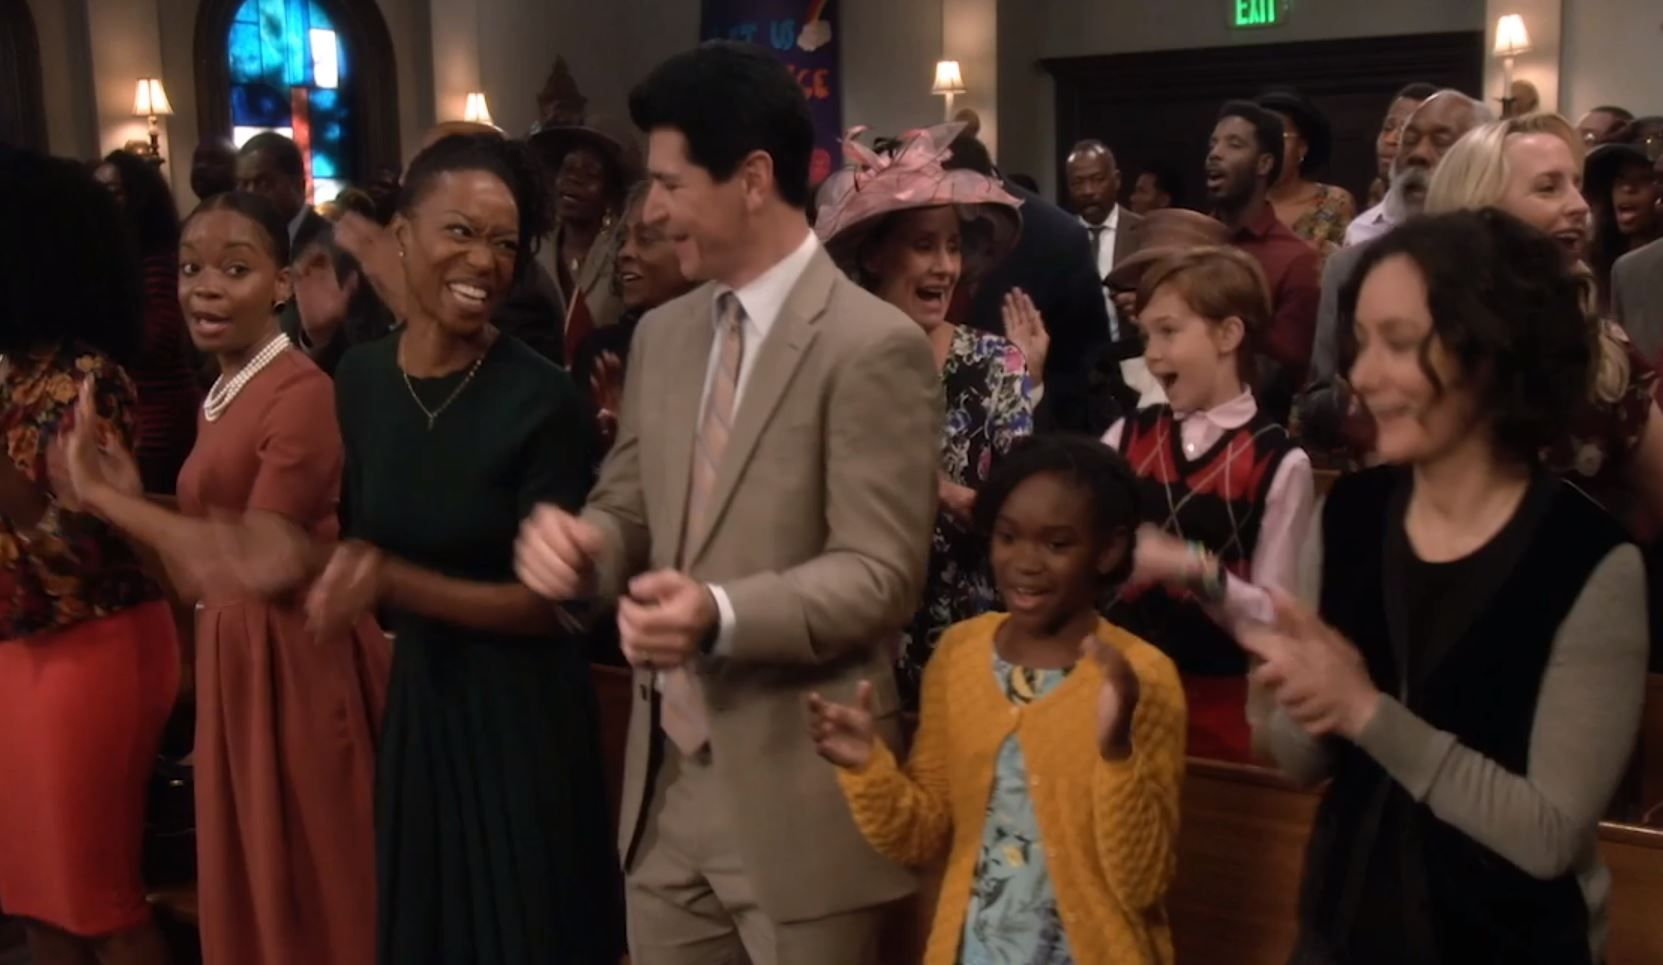 The Conners At church promo